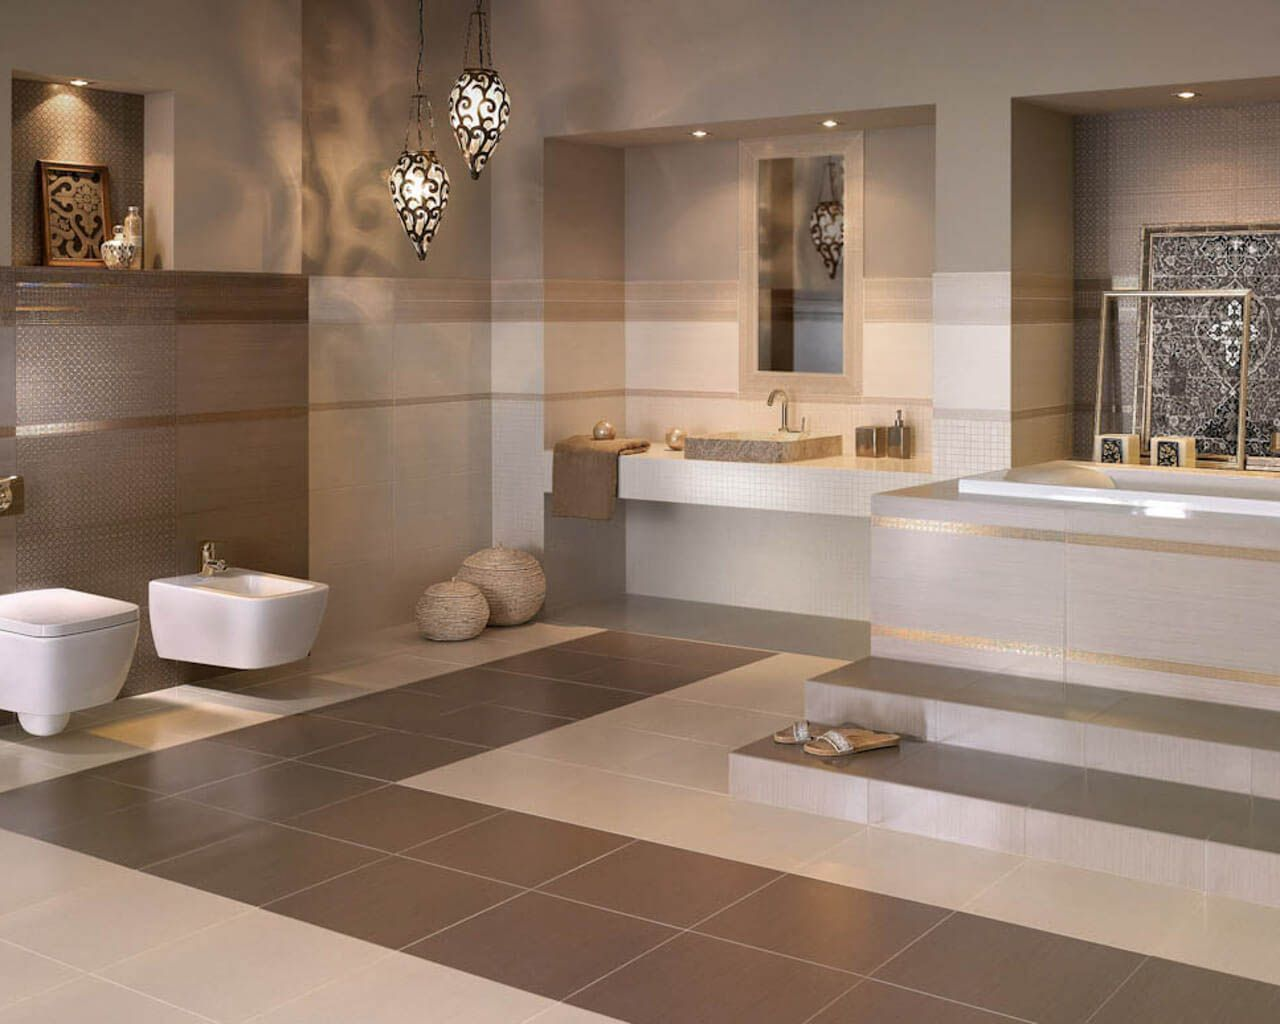 Meishagaram Beige Bathroom Tiles With Tiny Geometric Pattern - Beige-bathroom-tiles